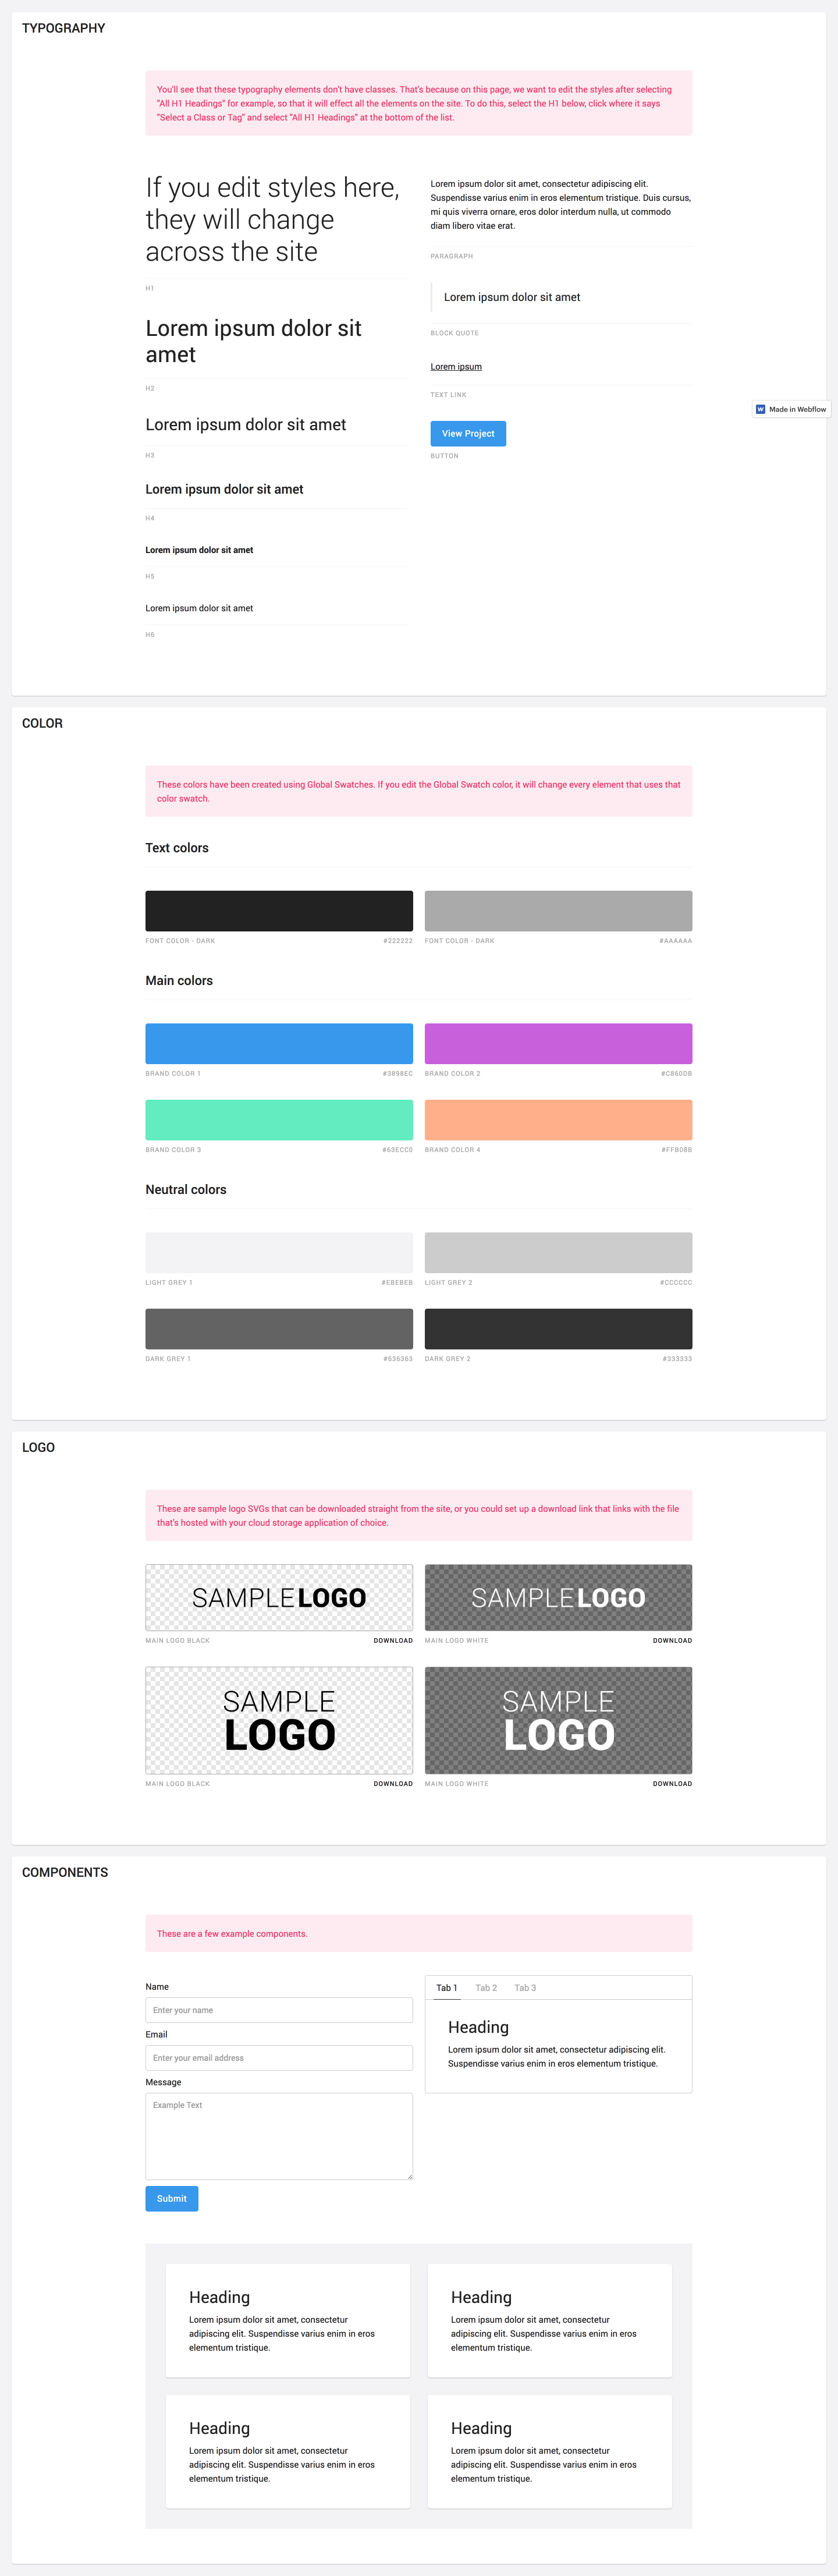 How to build a living style guide in Webflow | Webflow Blog